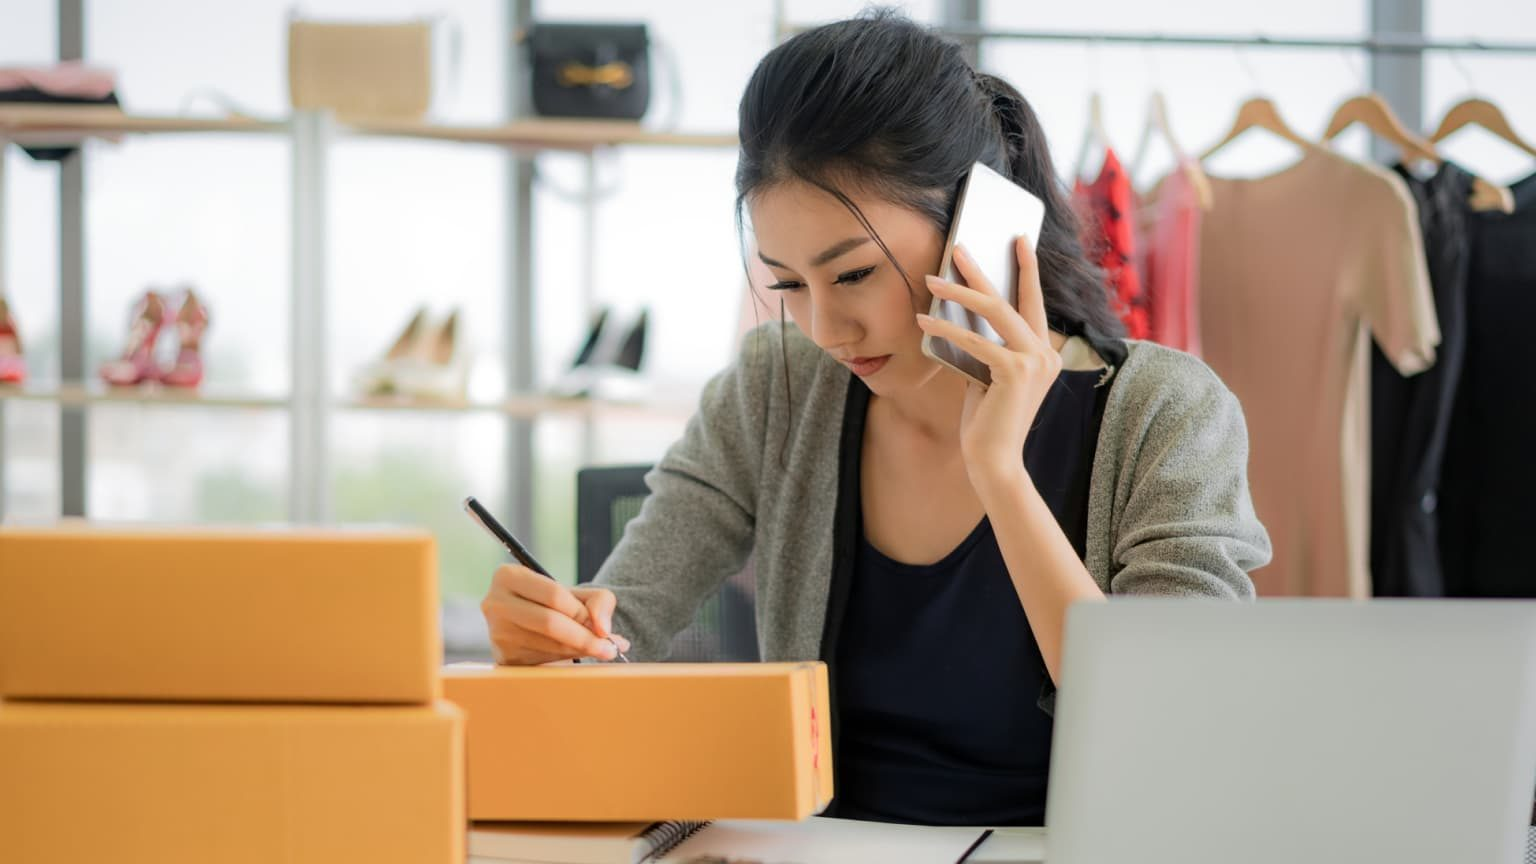 Female business owner preparing shipment of orders